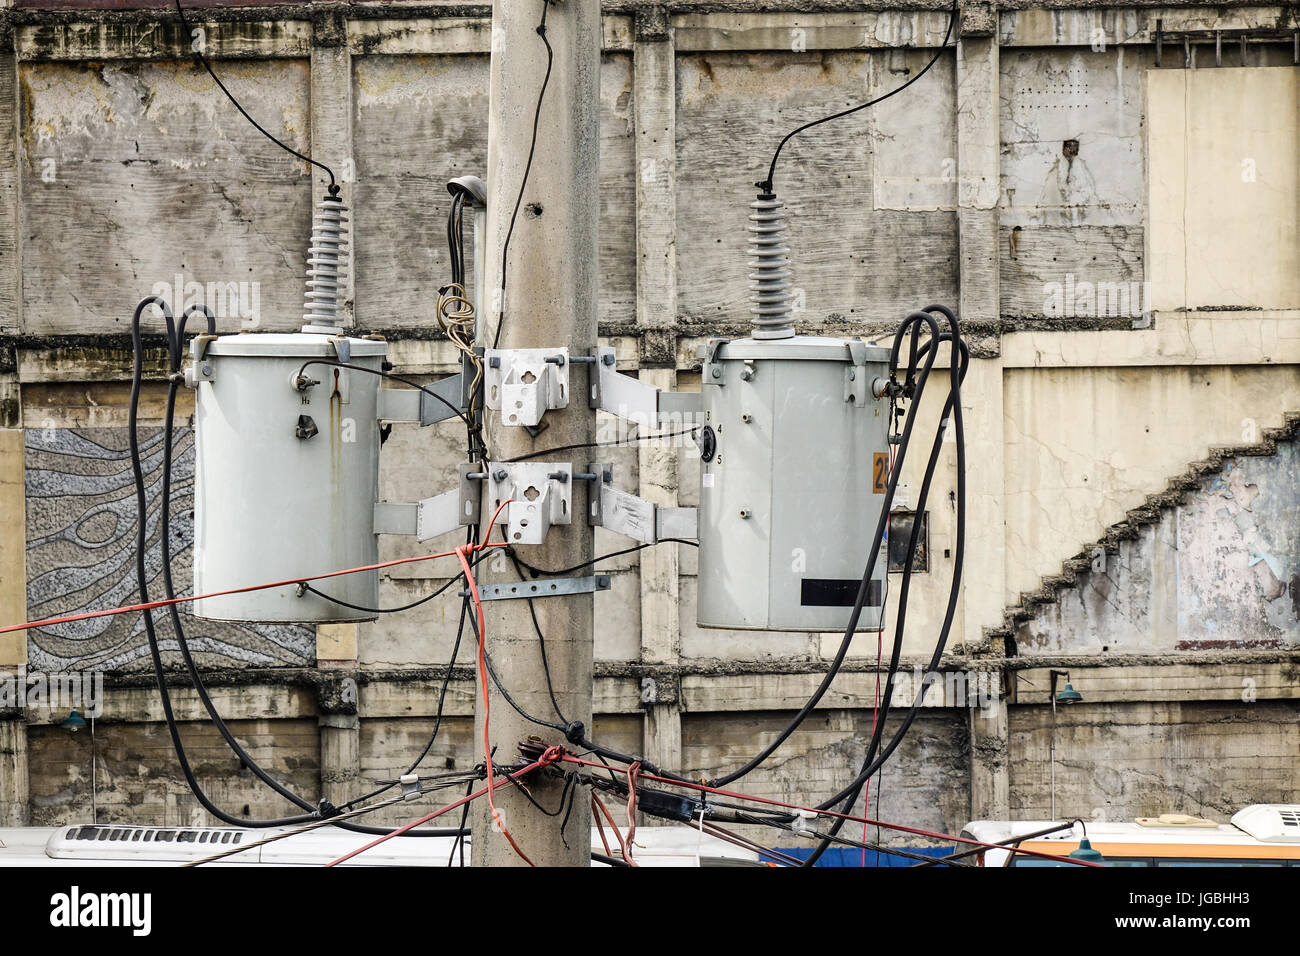 Philippines Electricity Stock Photos Eagle Wiring Devices Old Reinforced Concrete Pole With Electrical Wires In Image